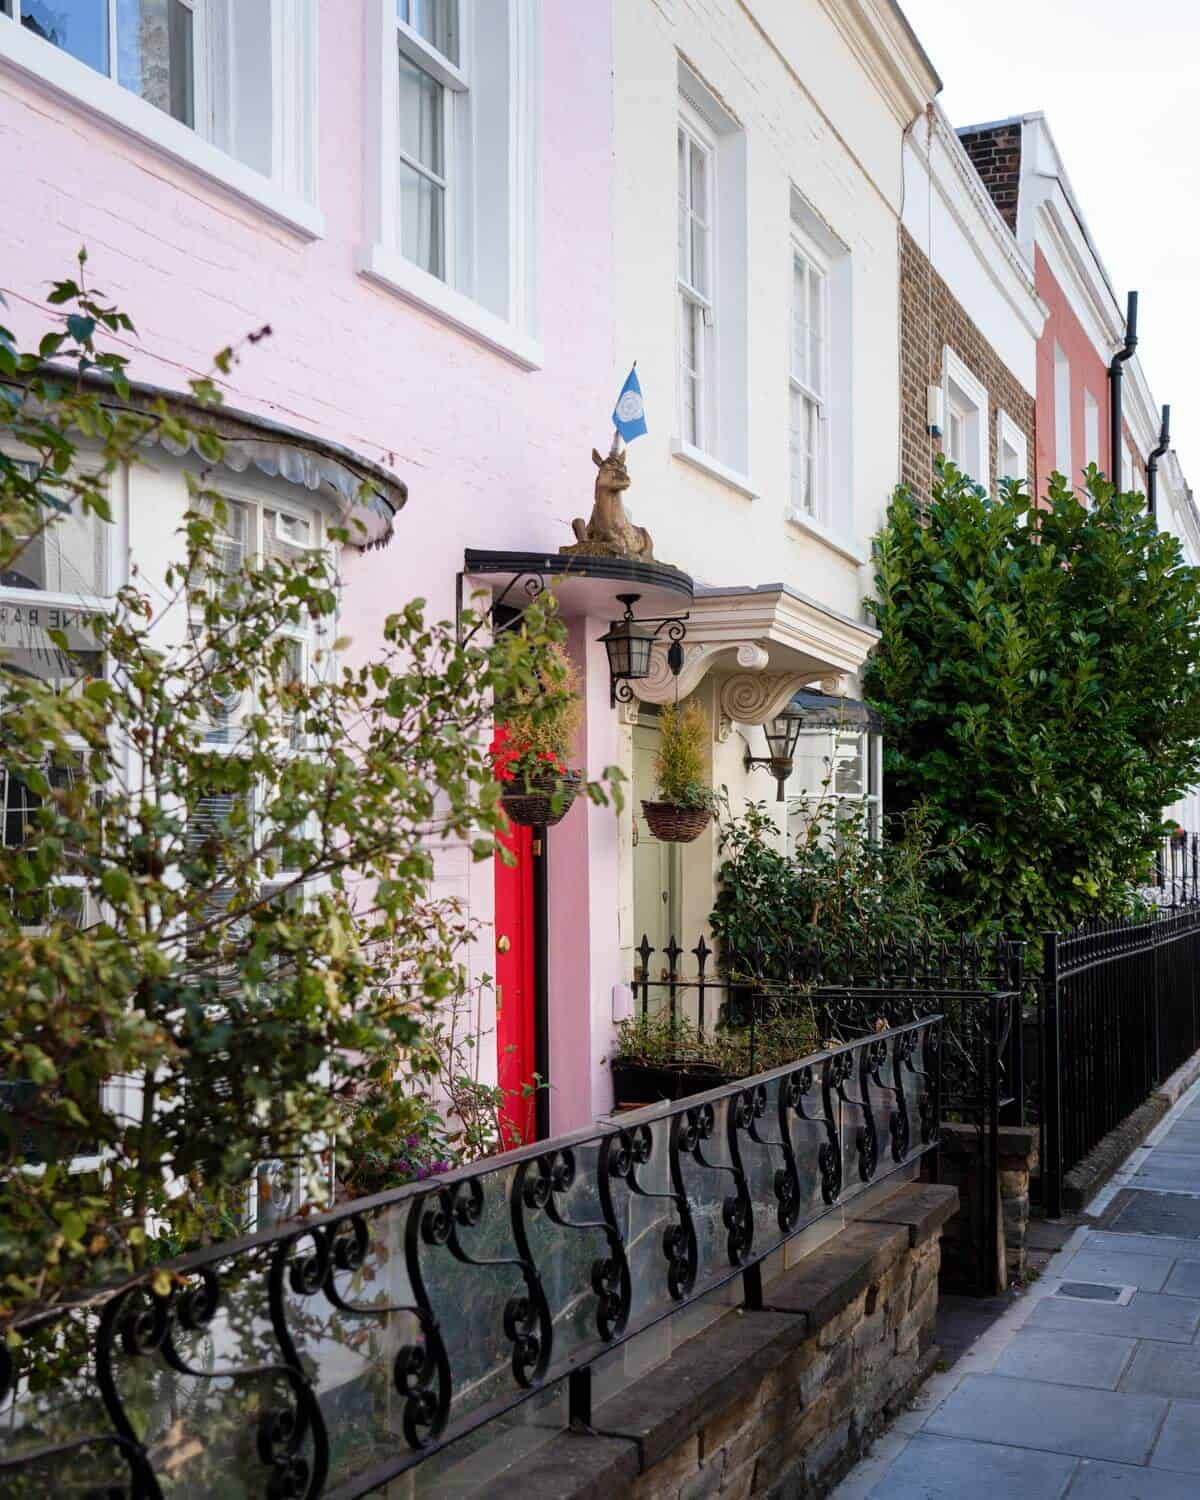 Pastel colored houses of Farmer Street, Notting Hill, London